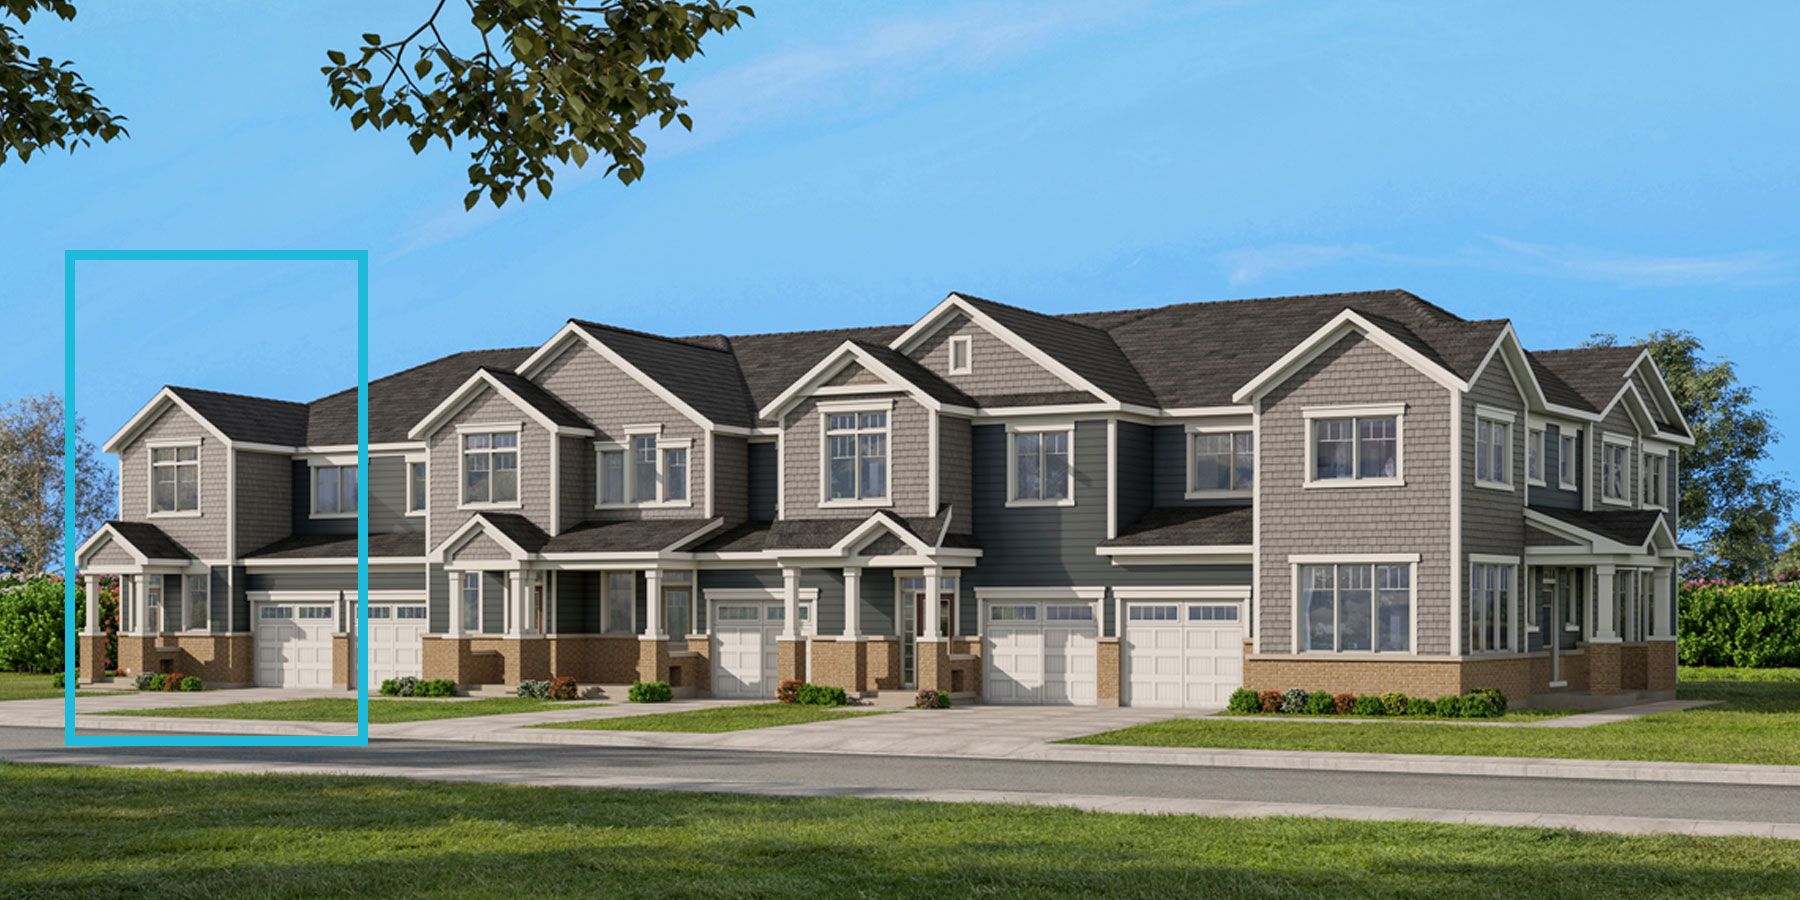 Majestic End Plan TownHomes at Connections In Kanata in Kanata Ontario by Mattamy Homes